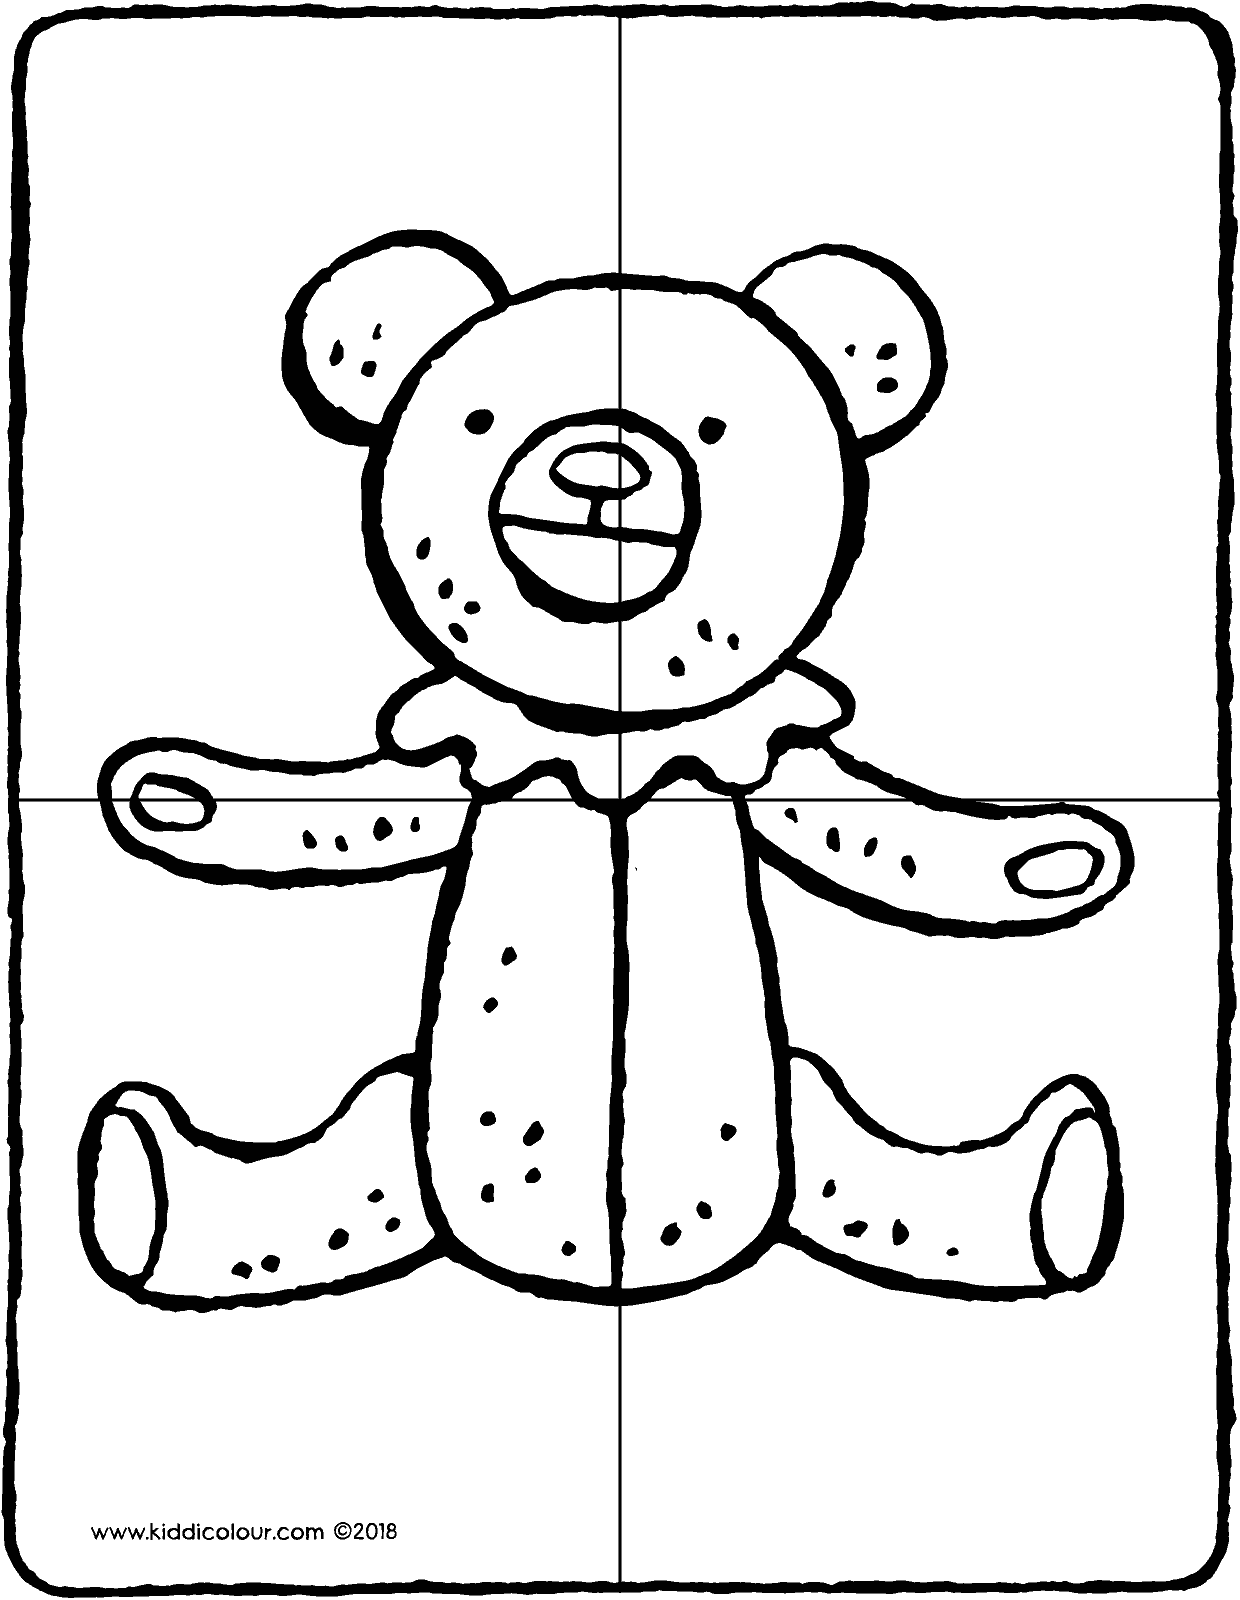 make a teddy puzzle kiddicolour